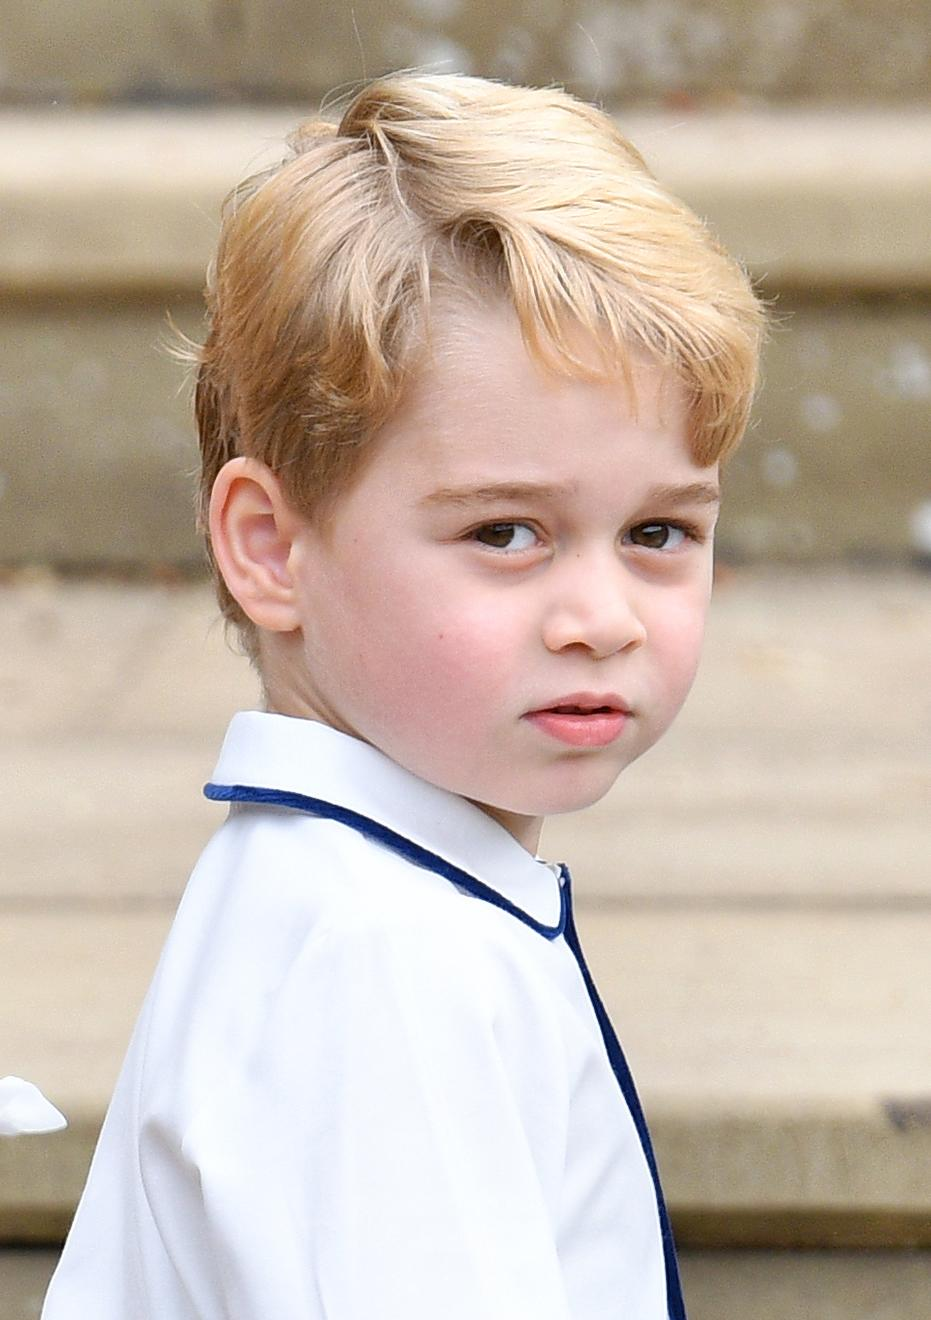 Prince George, aged five, at the wedding of Princess Eugenie and Jack Brooksbank in 2018 (Getty Images)